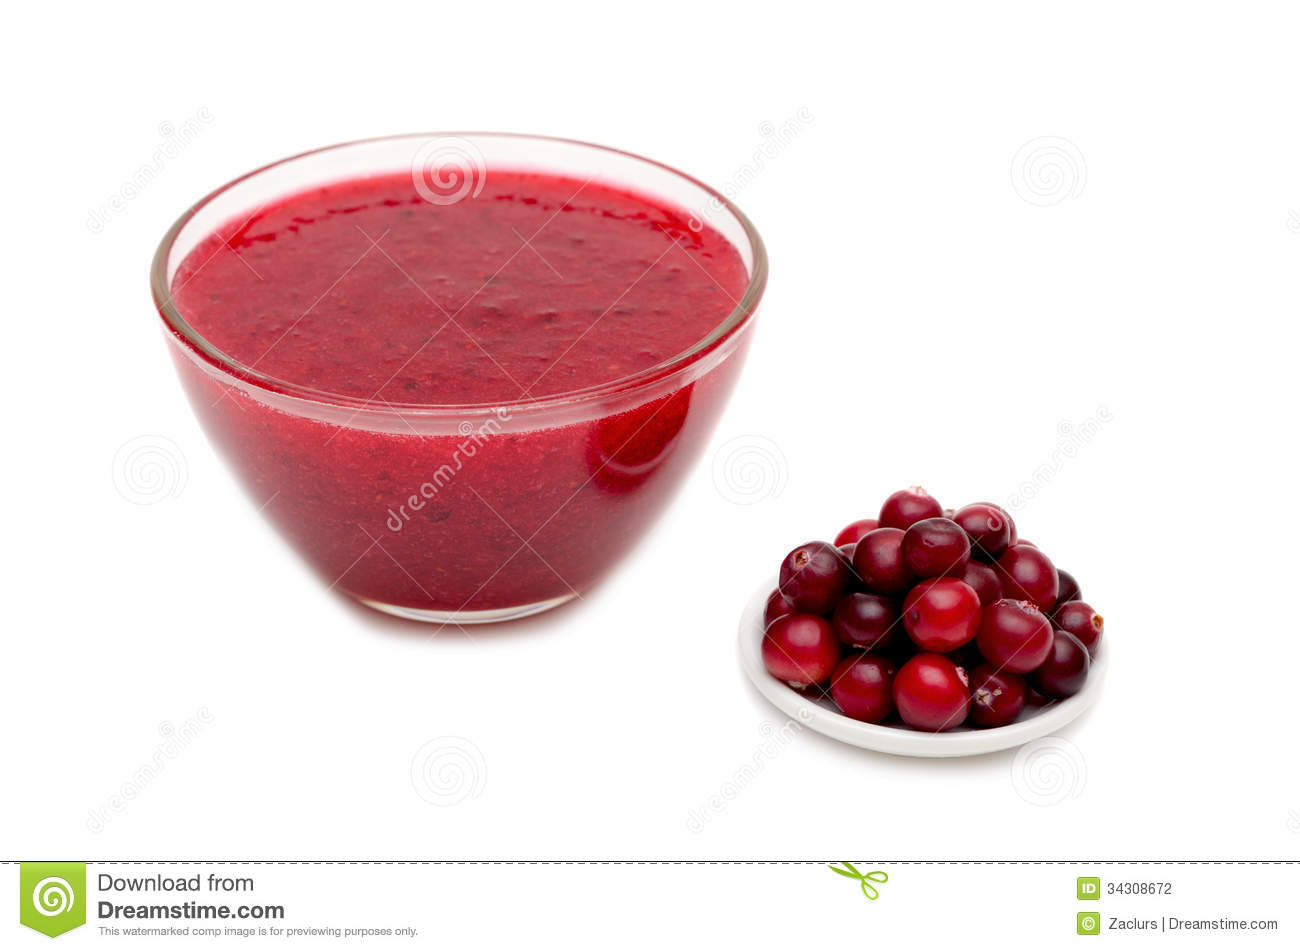 Canned Cranberry Sauce Prices At Food For Less